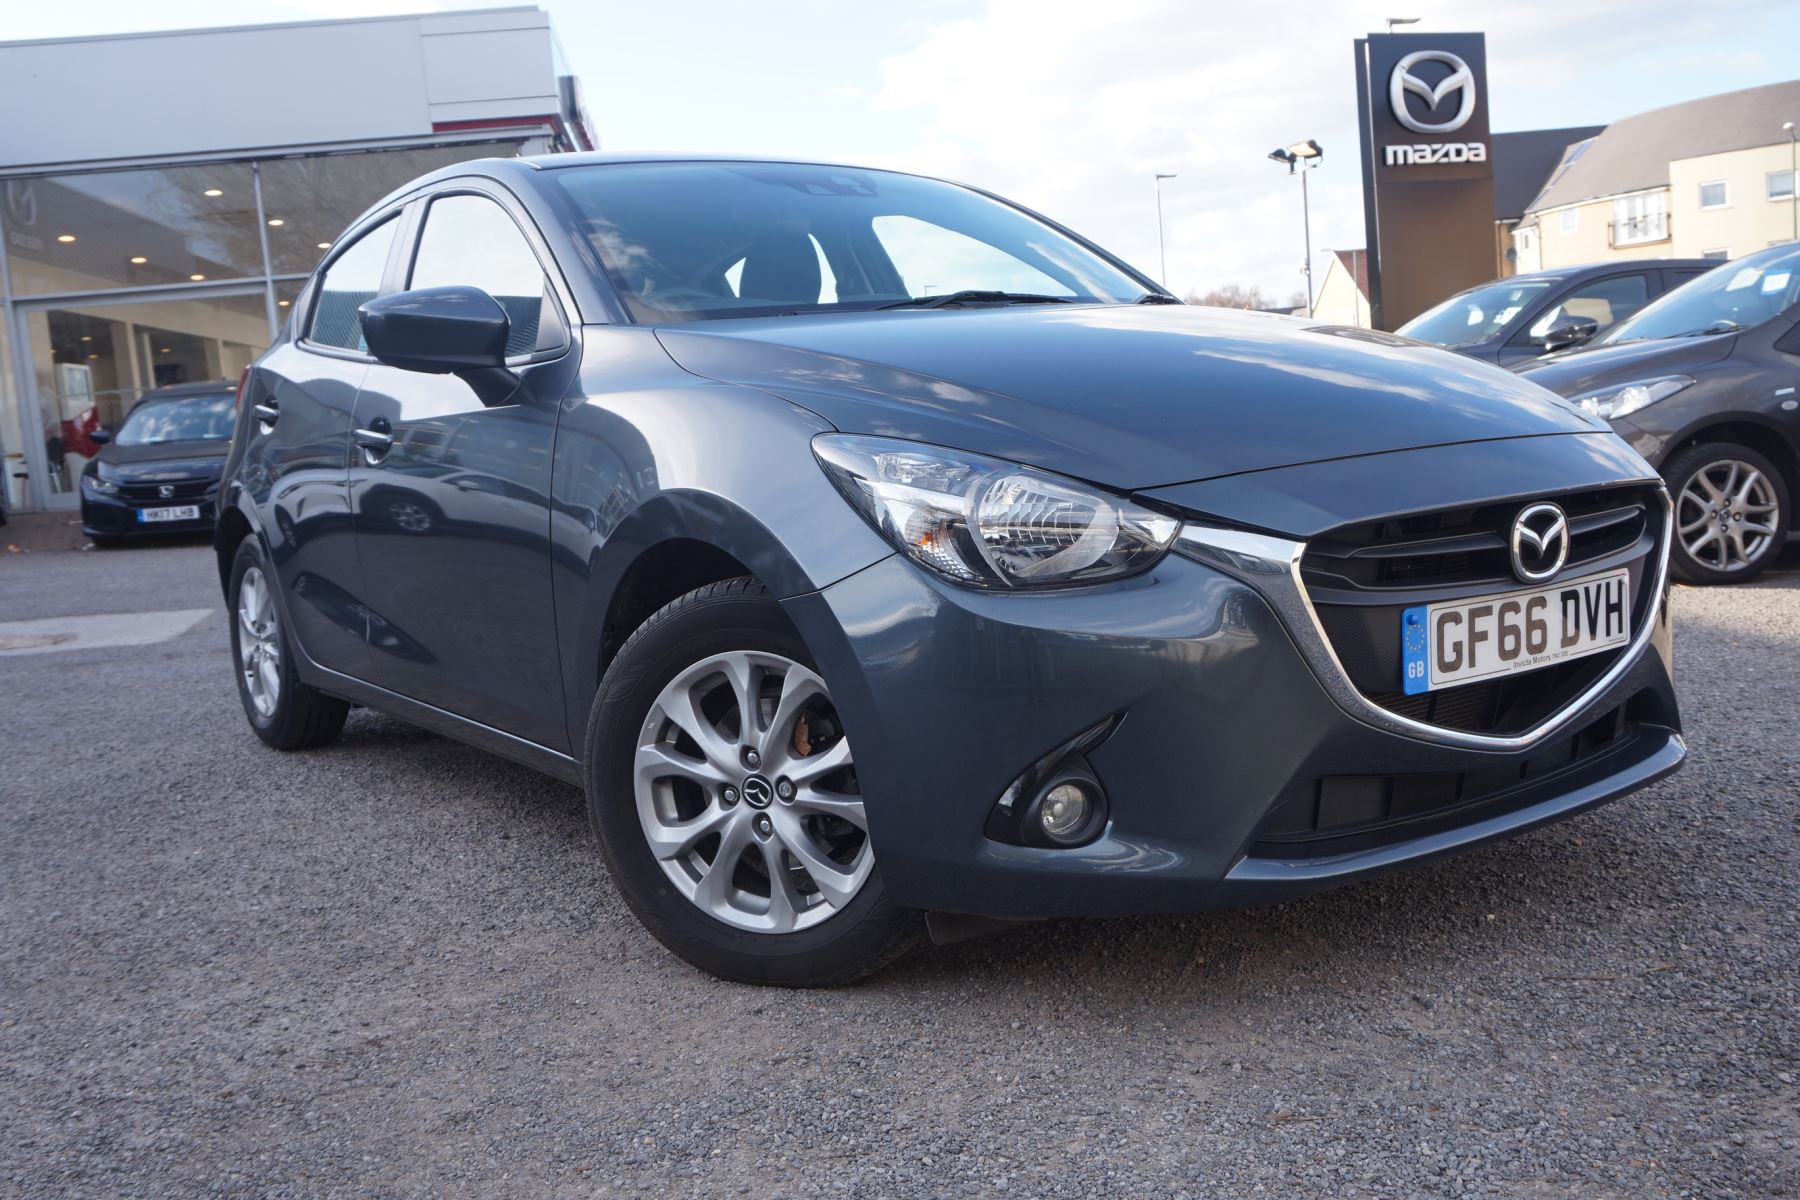 Luxury Used Mazda 2 Cars for Sale Near Me